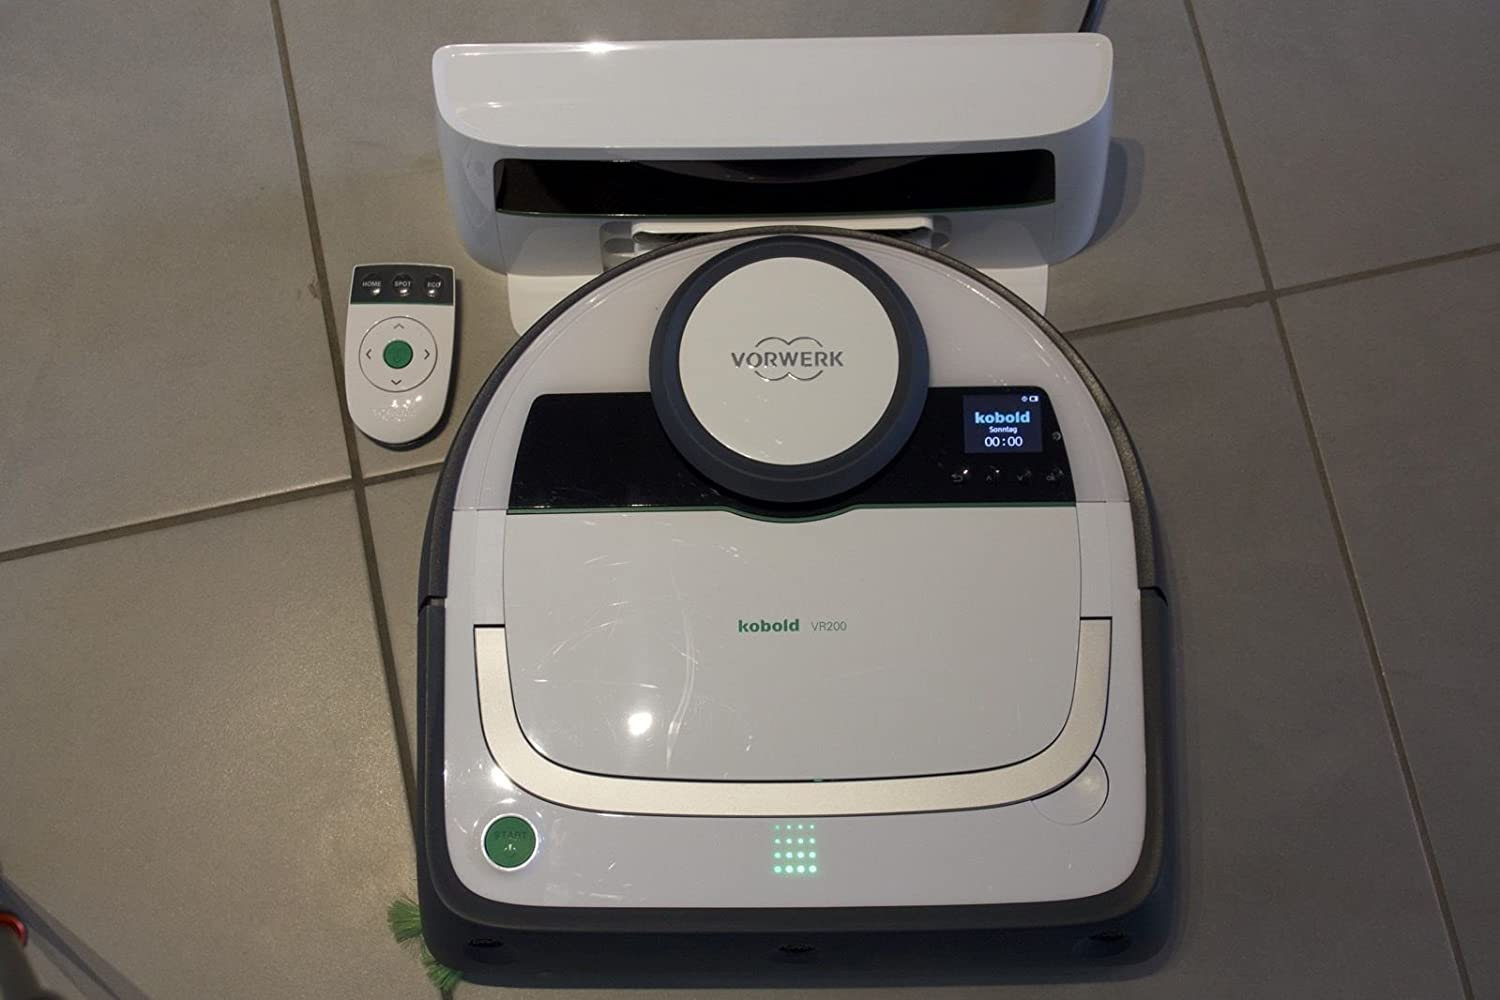 Robot aspirador Vorwerk Folletto modelo VR 200, embalado: Amazon ...